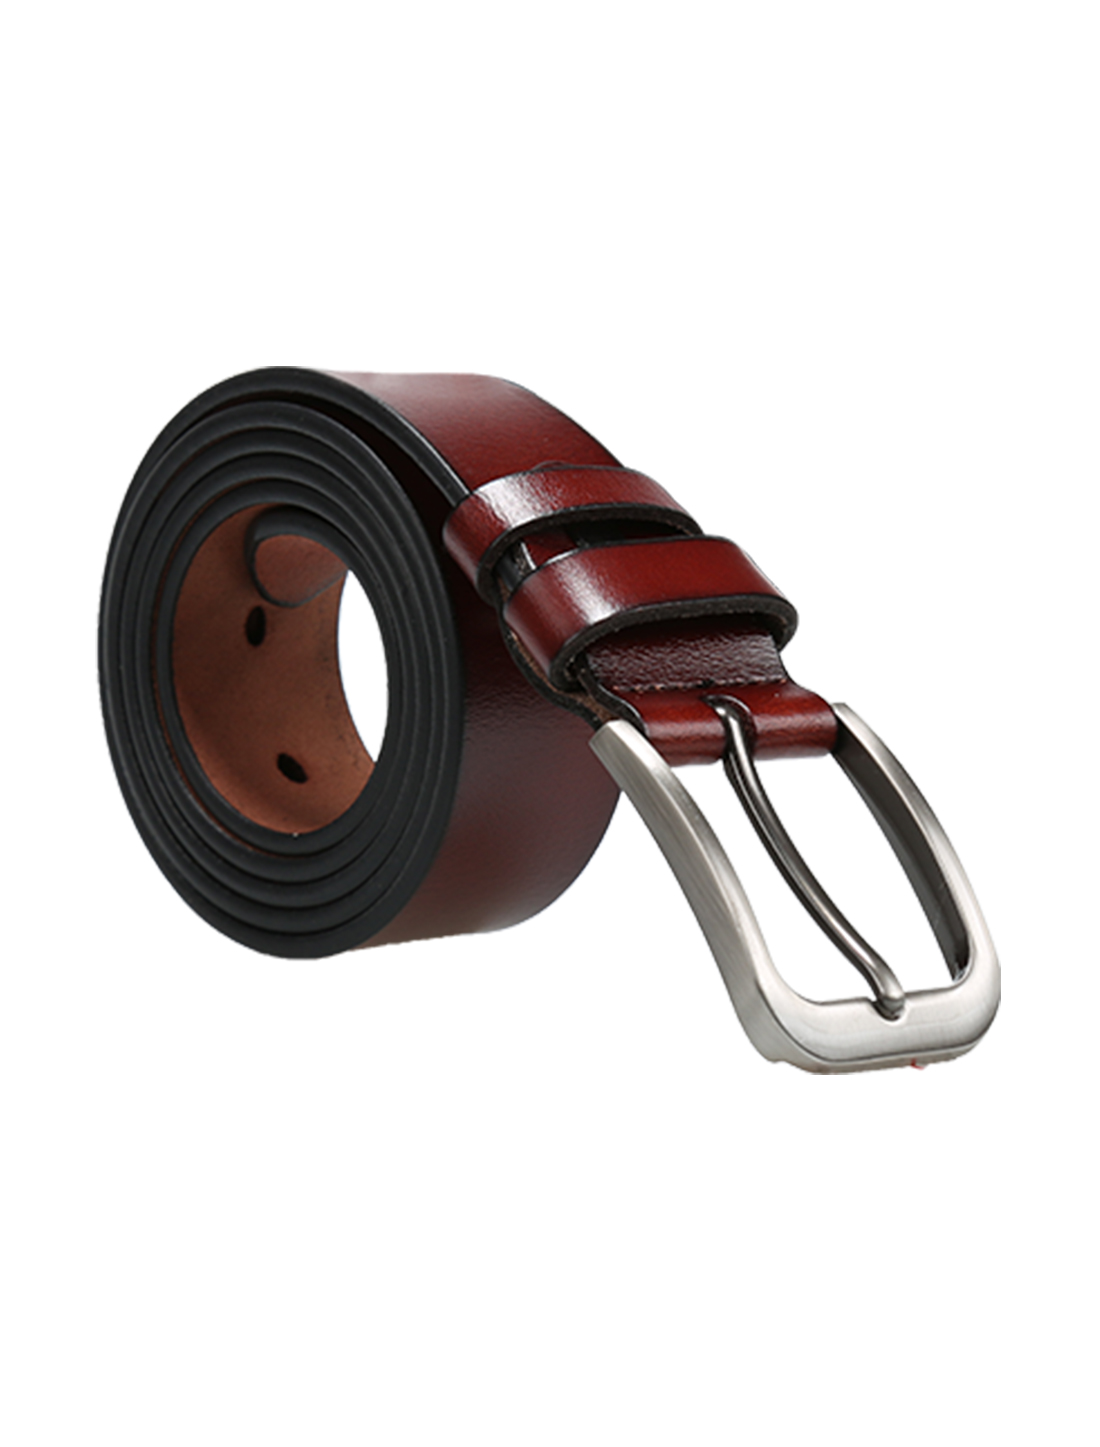 Men Business Fashion Single Pin Buckle Leather Belt 33mm Width 1 1/4 Brown 120cm